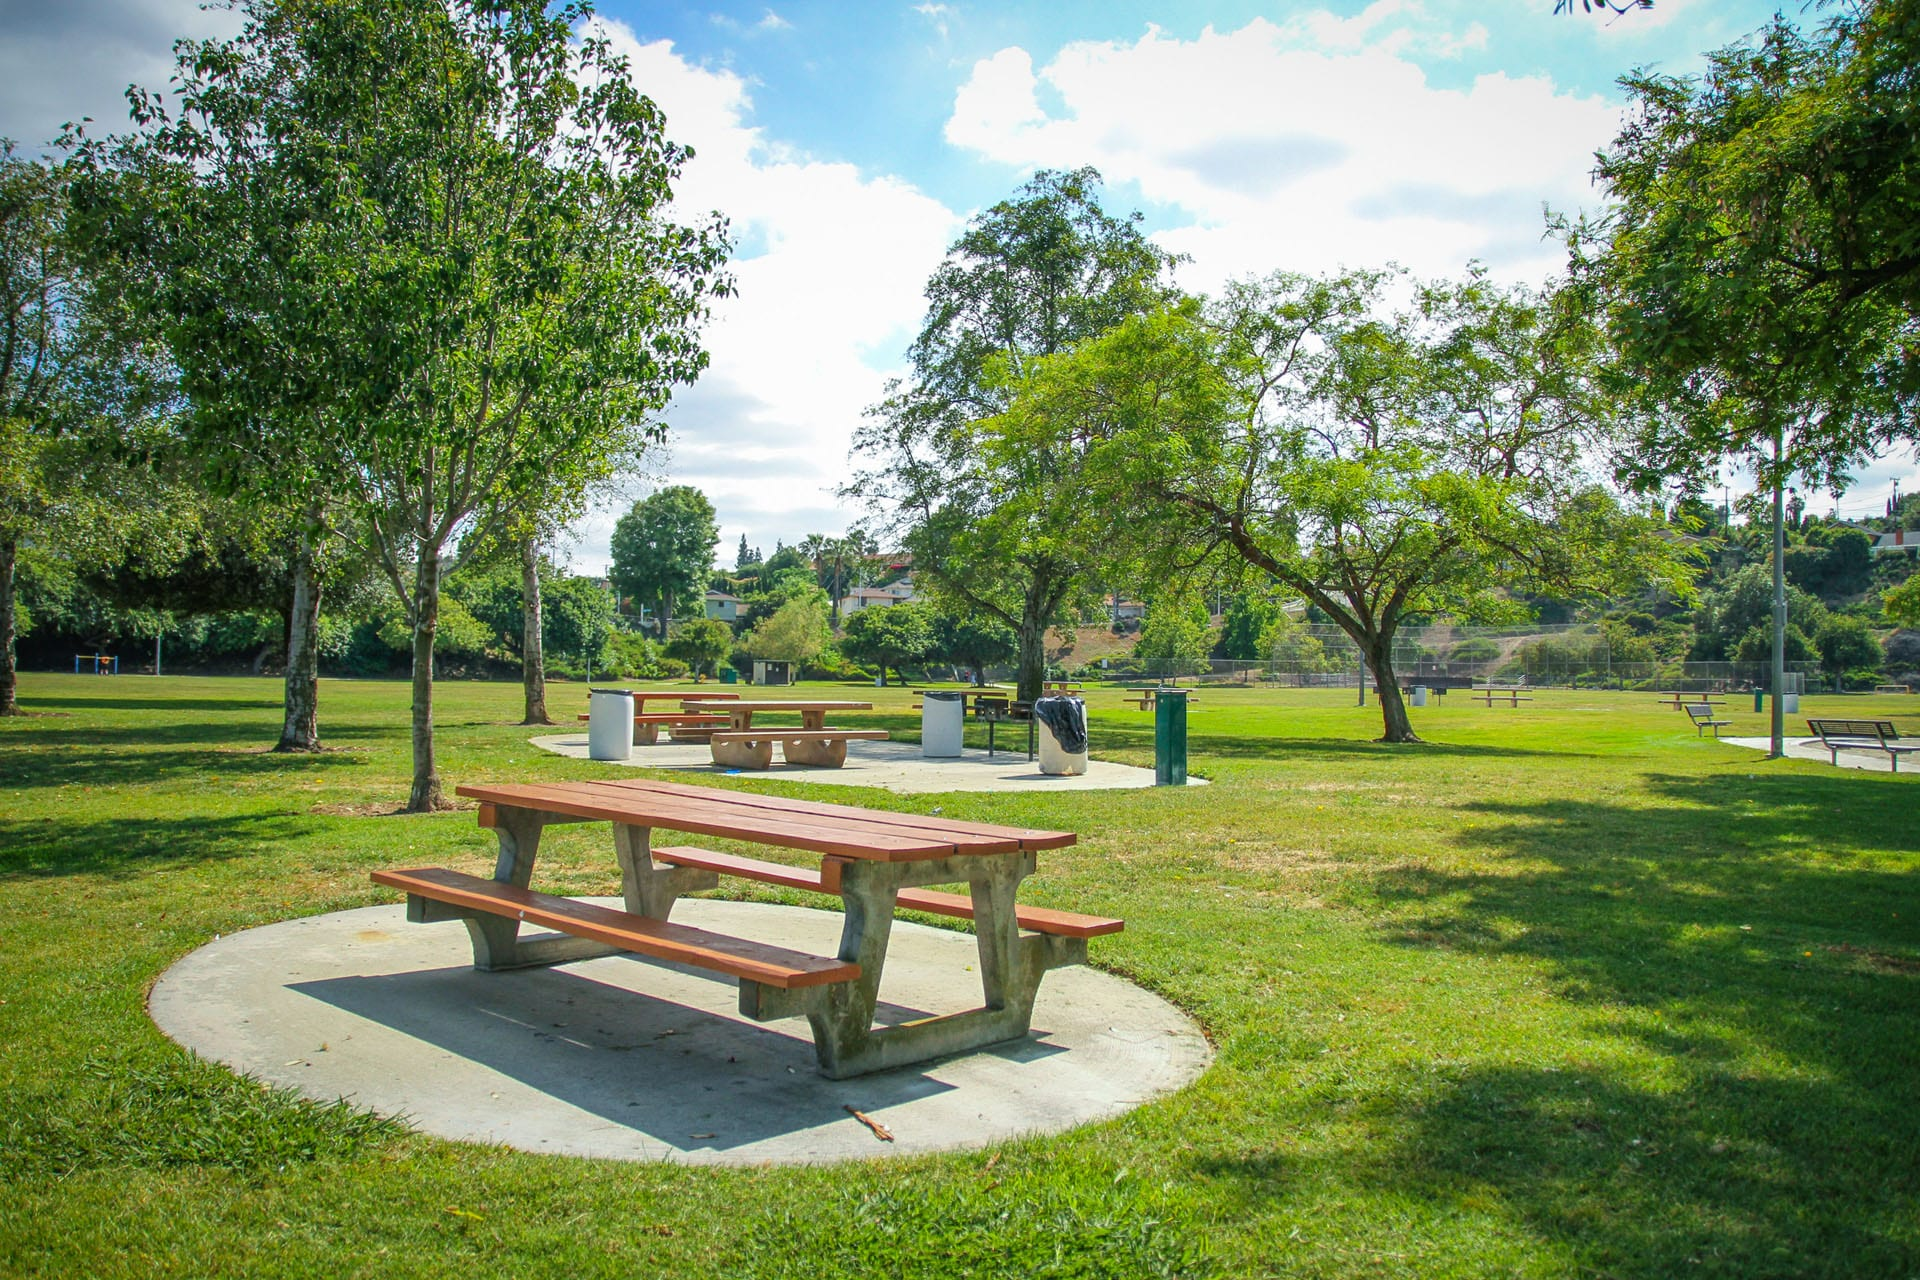 Picnic tables, grills and trash cans